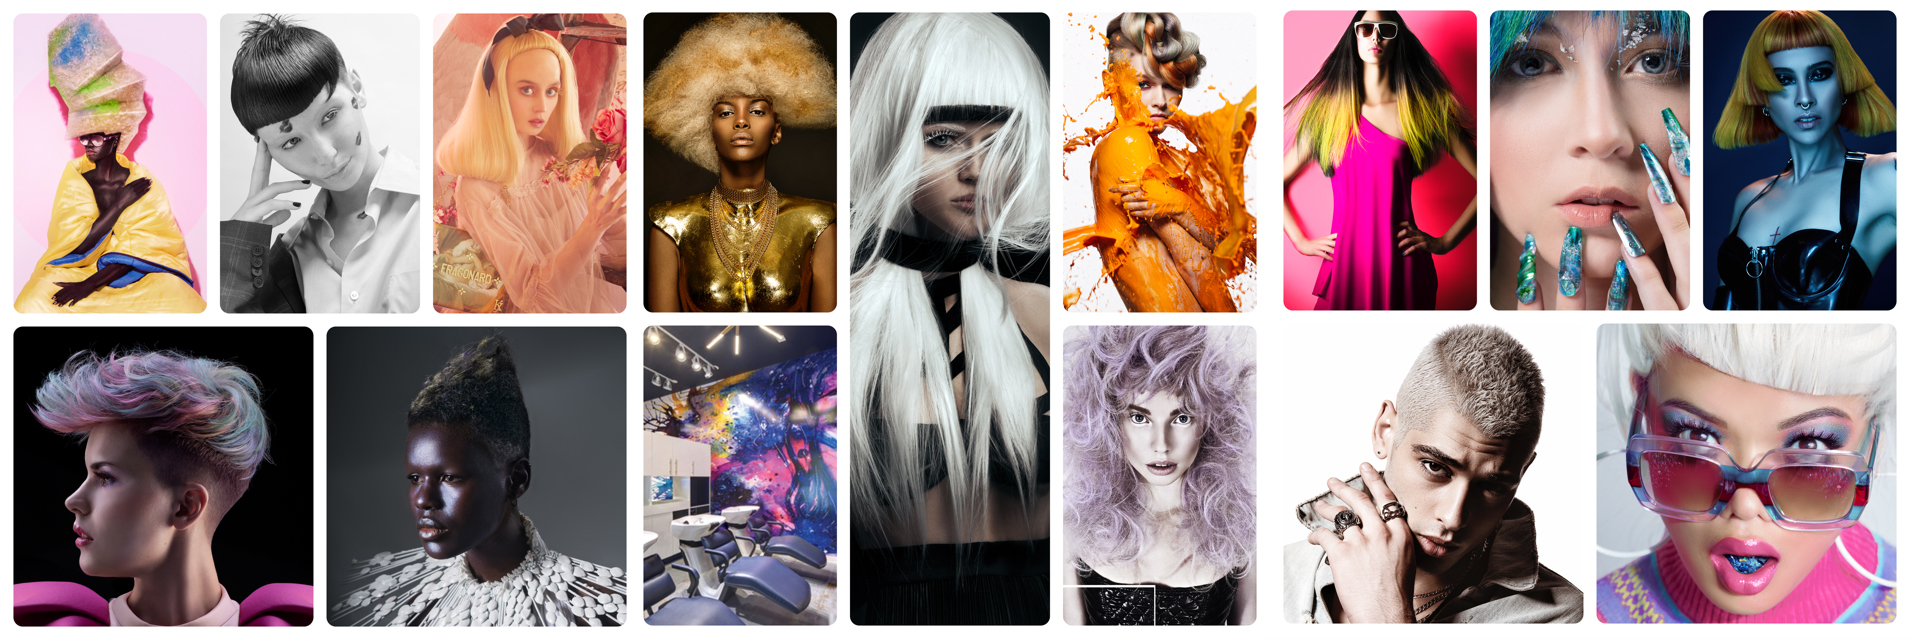 The 2019 North American Hairstyling Awards finalists have been announced in 15 categories. All NAHA images/photos are copyright © of the North American Hairstyling Awards and the Professional Beauty Association. All rights reserved.